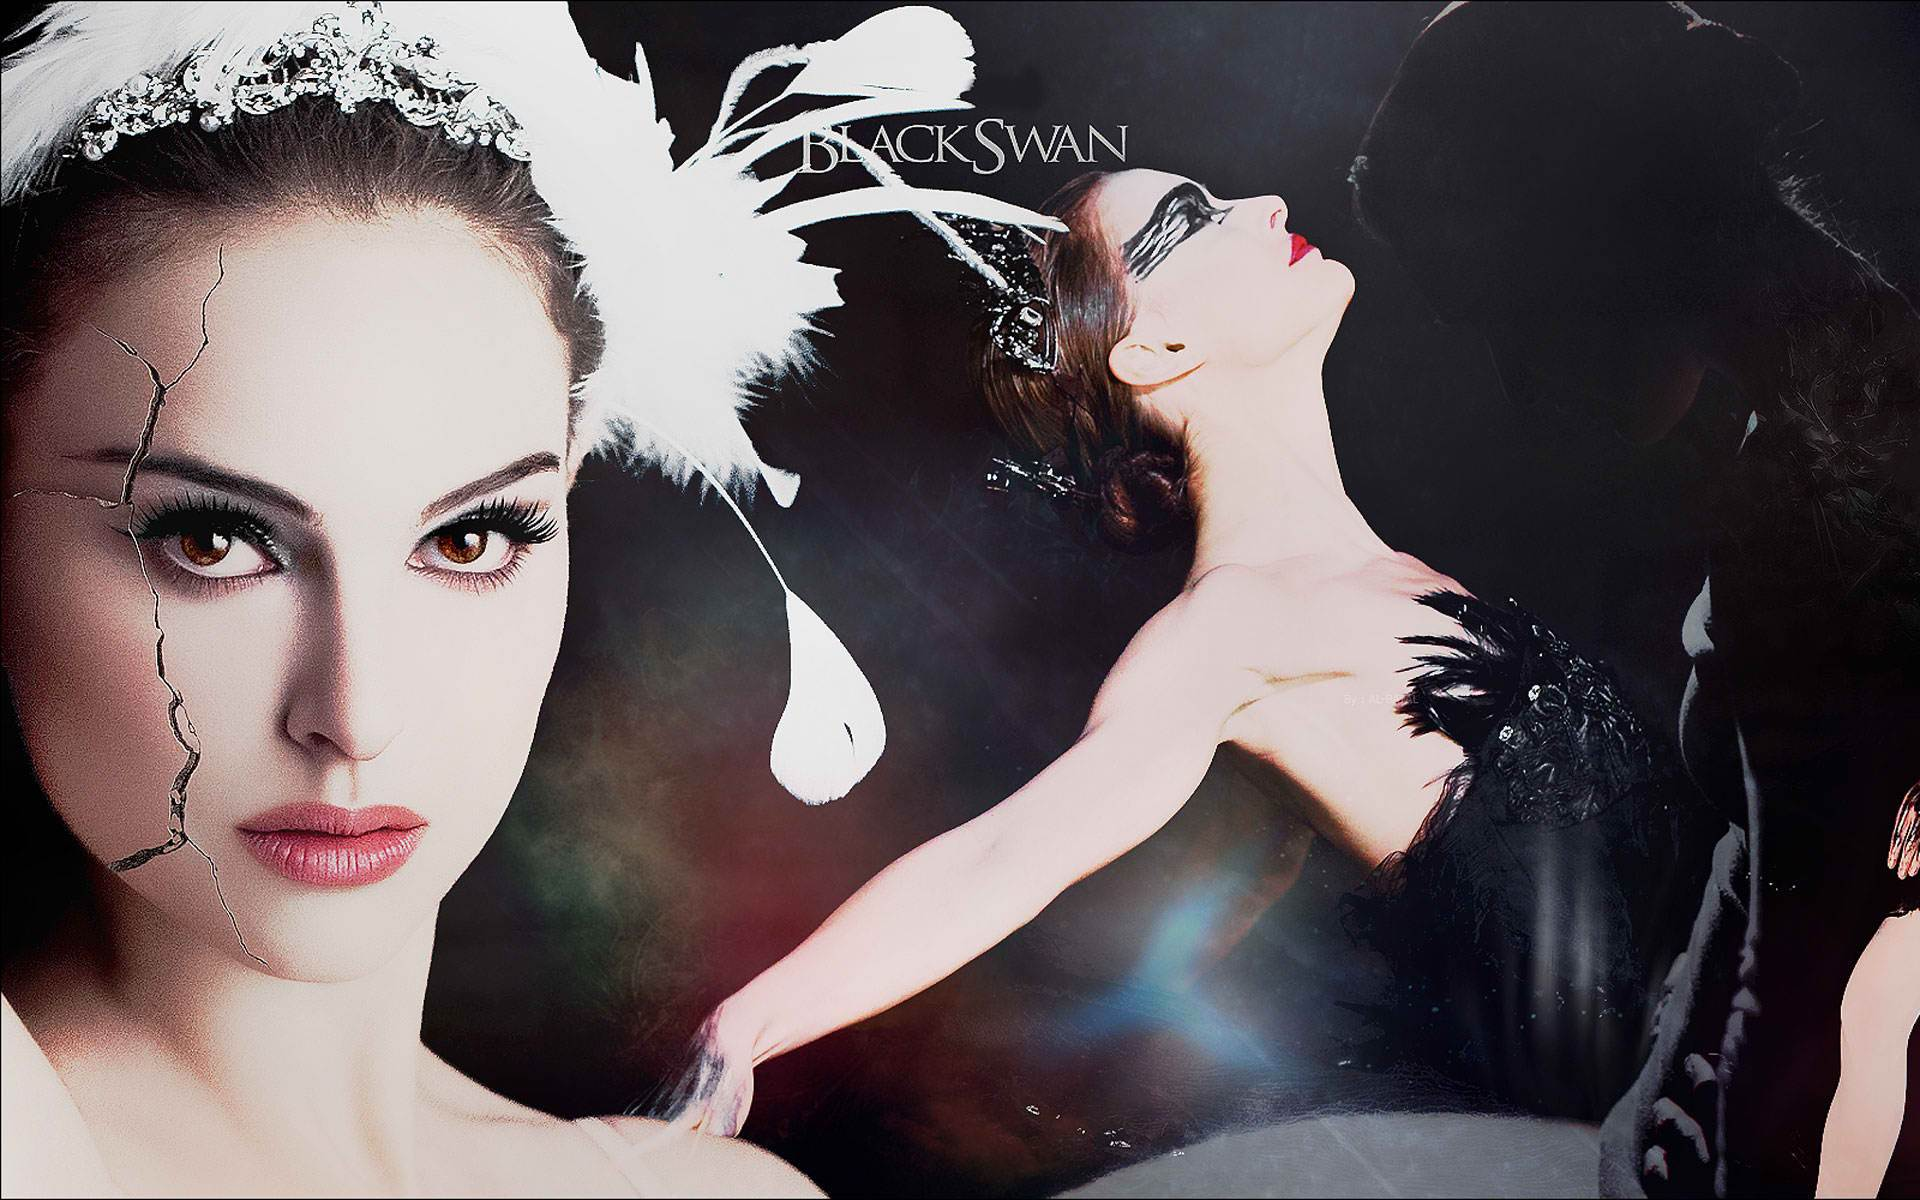 The Black Swan Movie 026-07